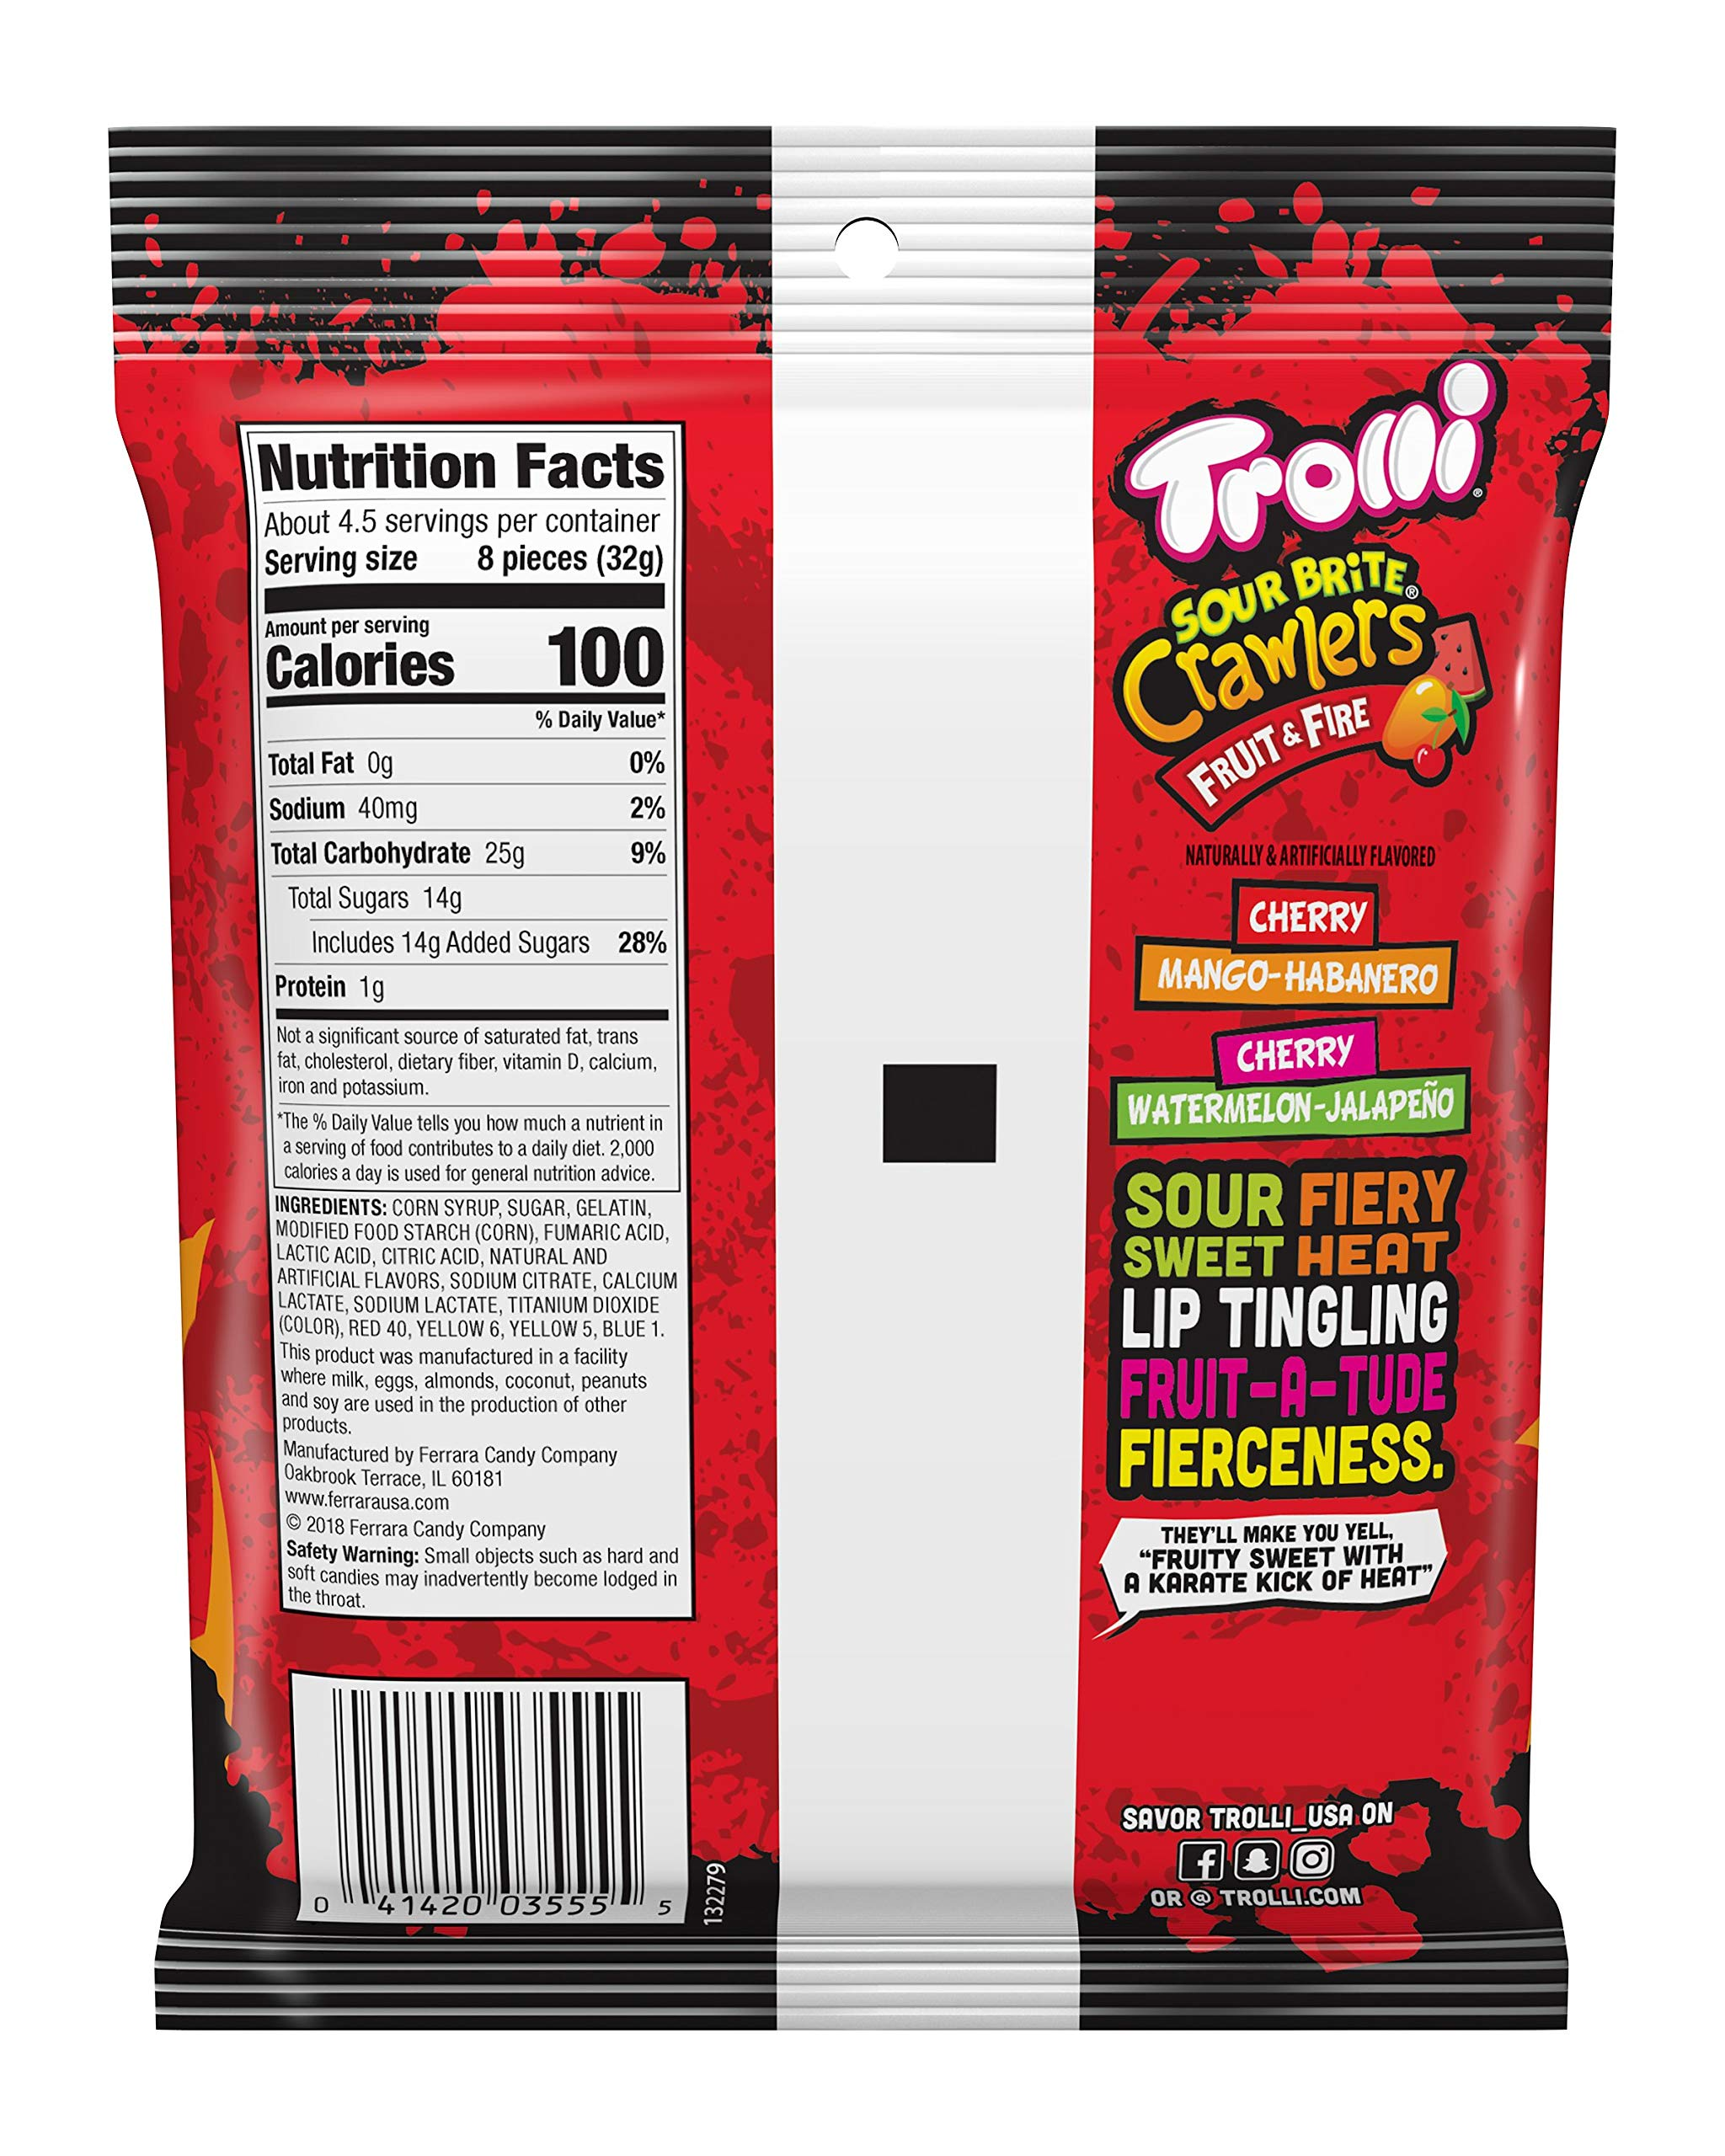 Trolli Sour Brite Crawlers Gummy Worms Fruit & Fire, 5 Ounce Peg Bag (Pack of 12) Sweet, Sour & Spicy Gummy Worms by Trolli (Image #4)